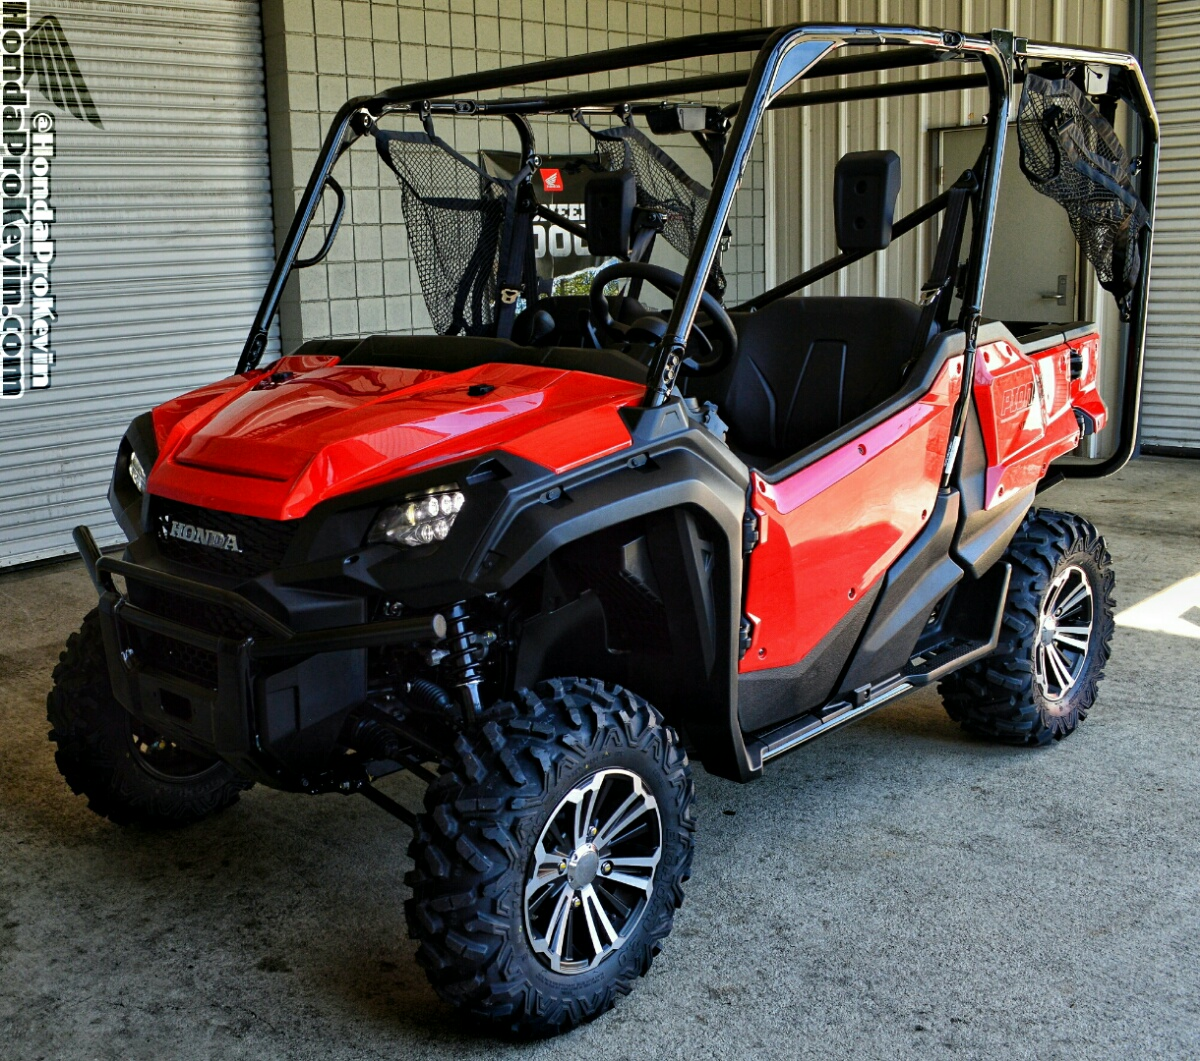 2018 Honda Pioneer 1000-5 Deluxe Review / Specs - Side by Side ATV / UTV / SxS / Utility Vehicle 4x4 - SXS1000 - SXS10M5